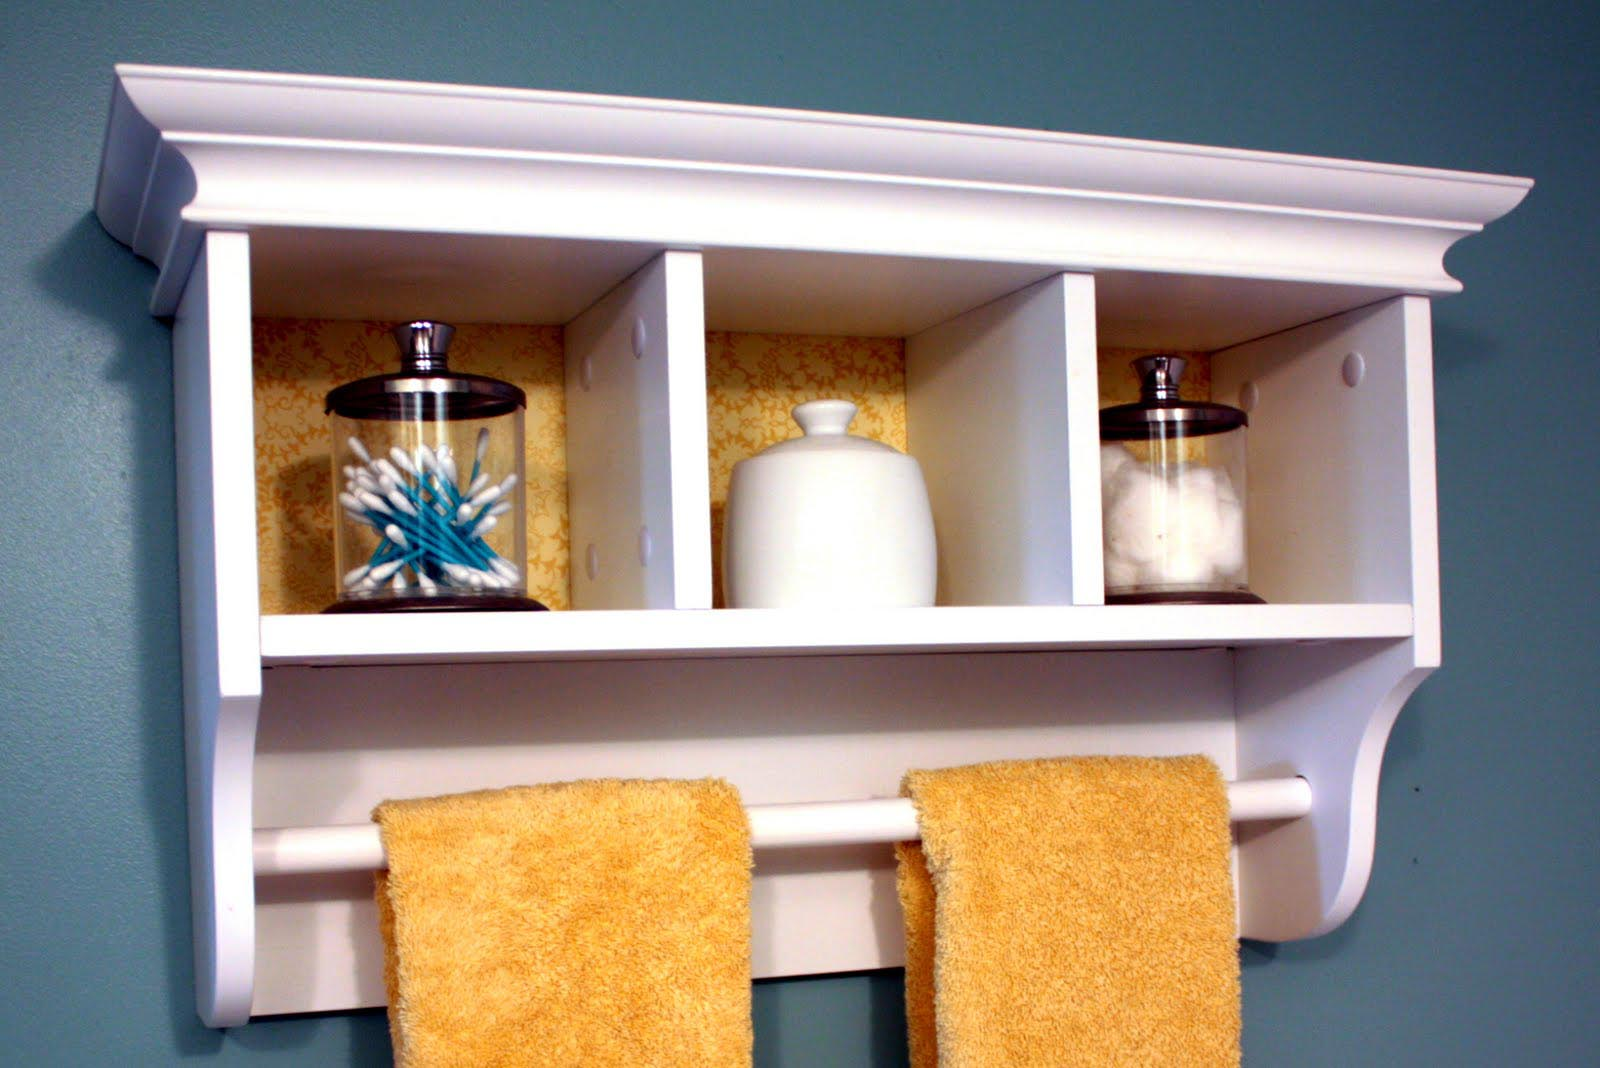 Pictures Of Wall Shelves Small Wall Shelves Bathroom Best Decor Things